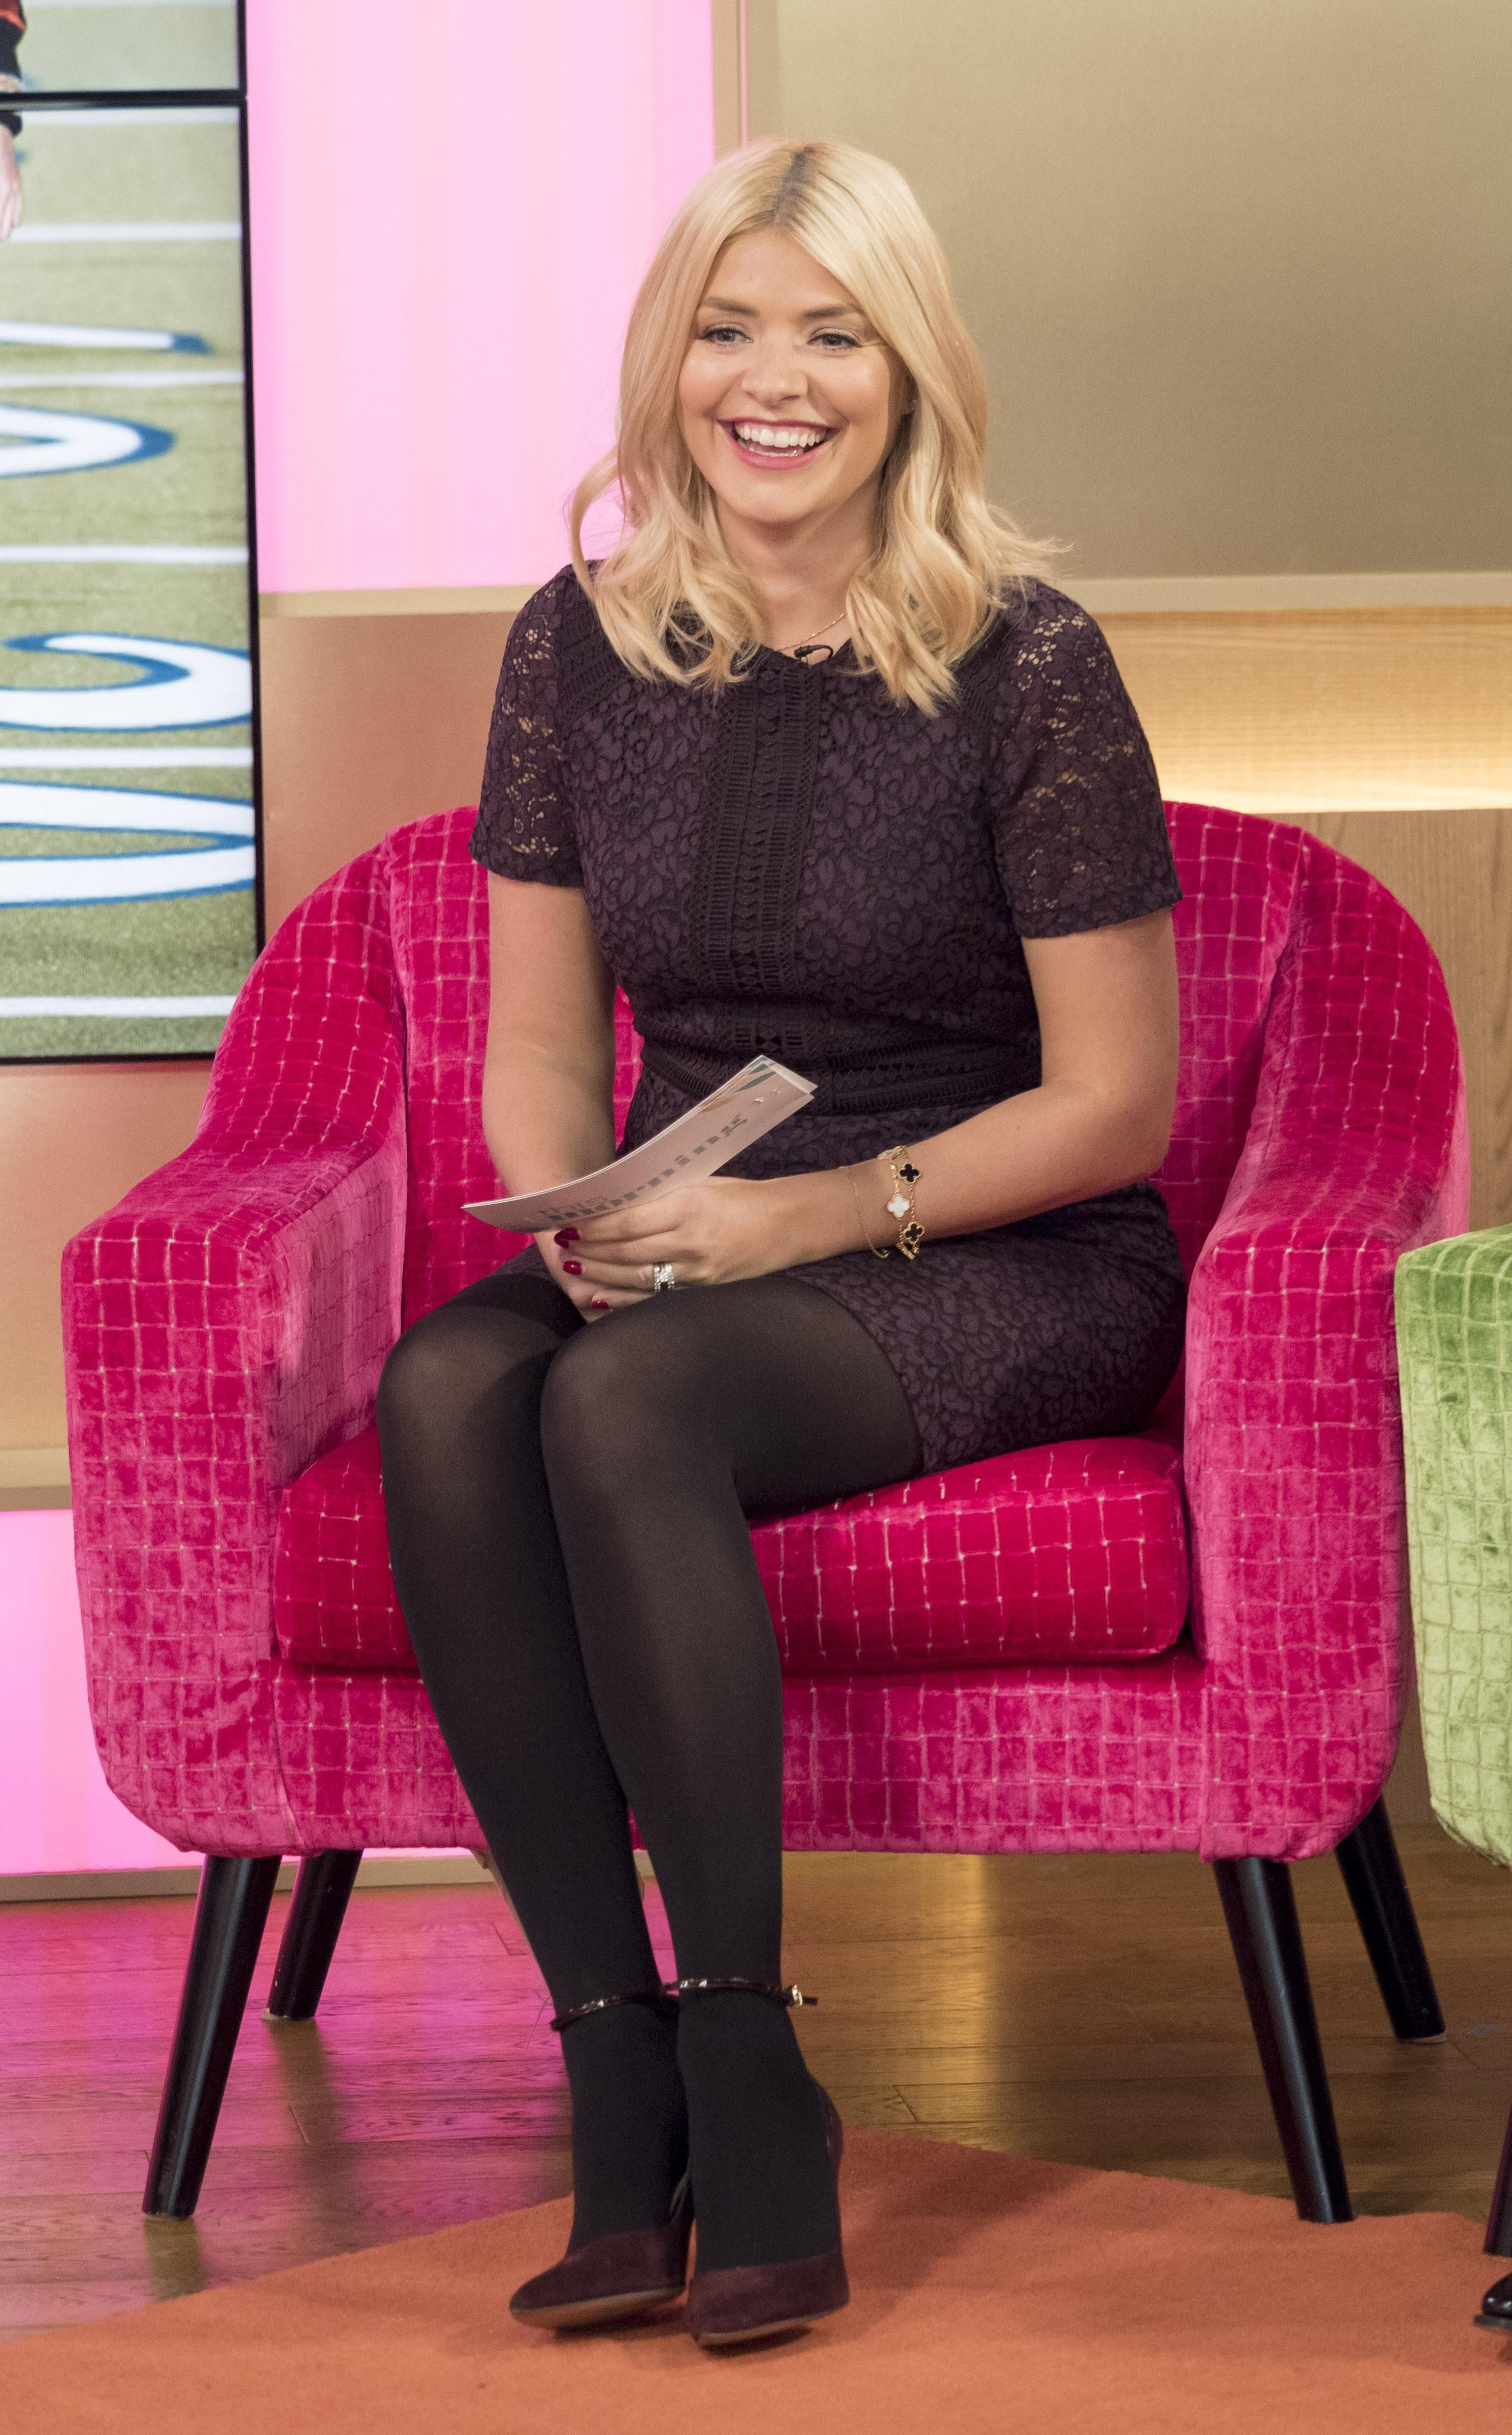 ImageBam | Holly willoughby legs, Holly willoughby outfits